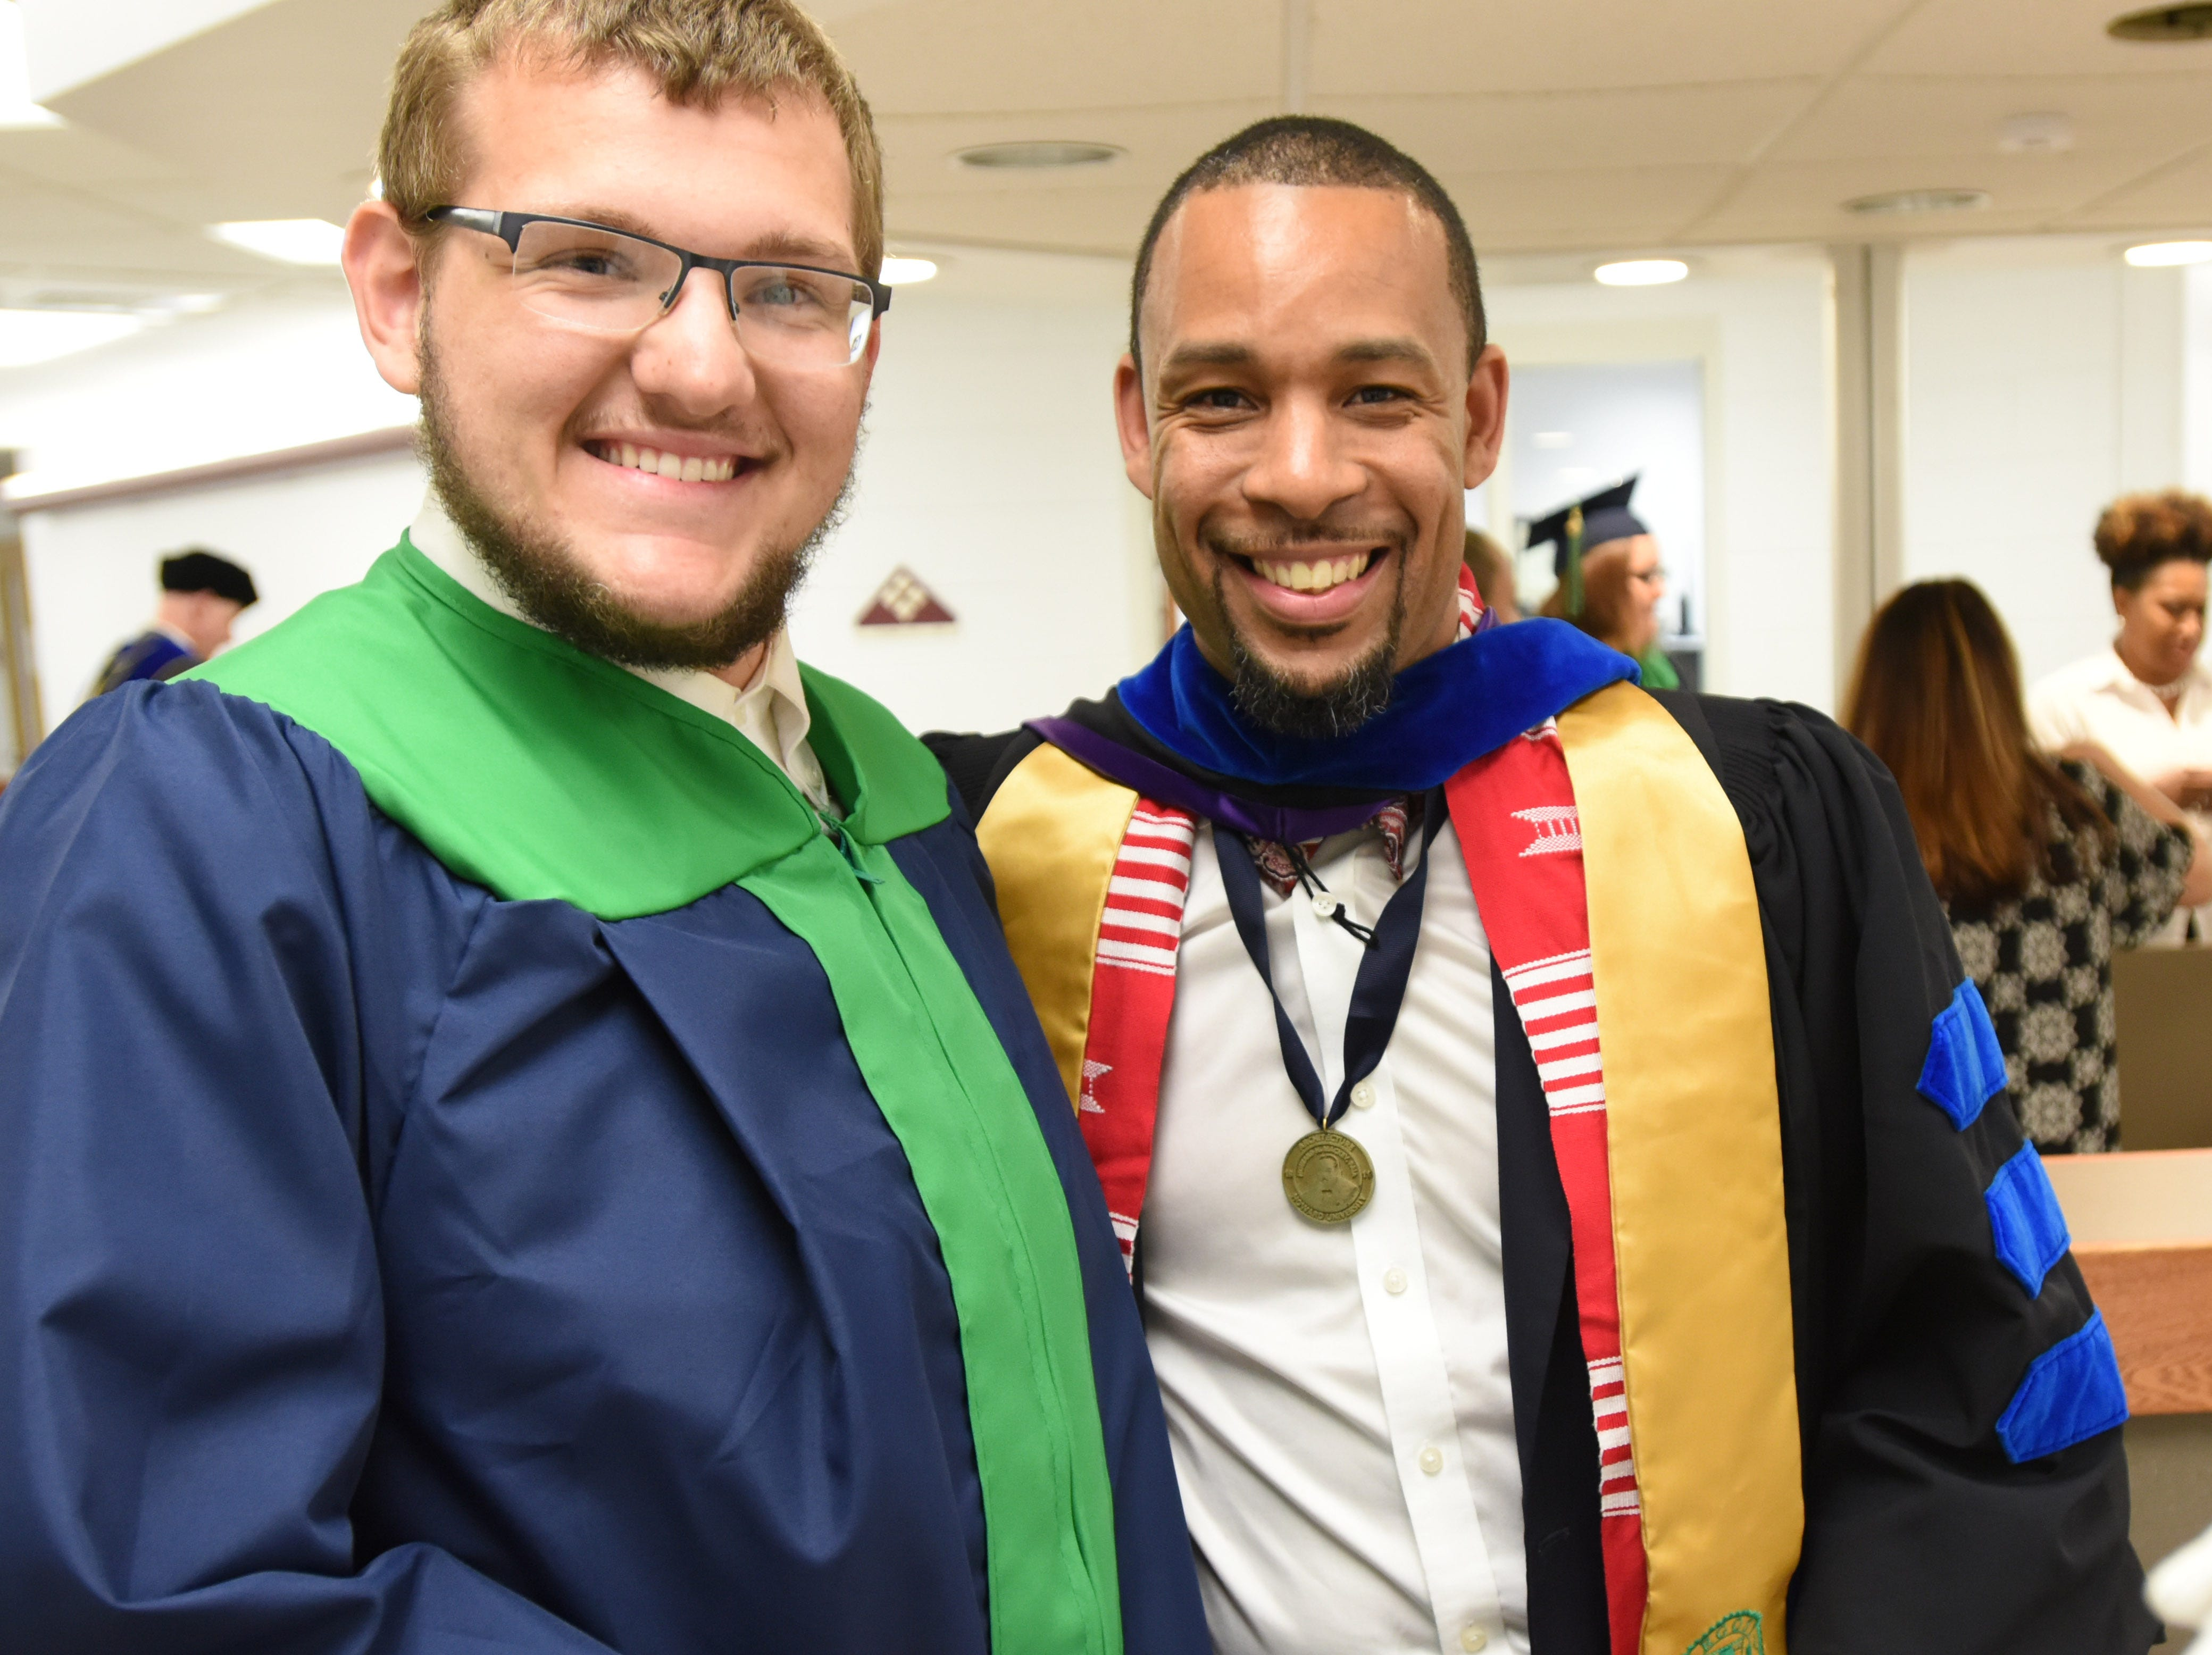 Delaware Technical Community College student Adam Faulkner of Hartly and professor R.S. Chandler get ready for commencement in Dover on Monday.